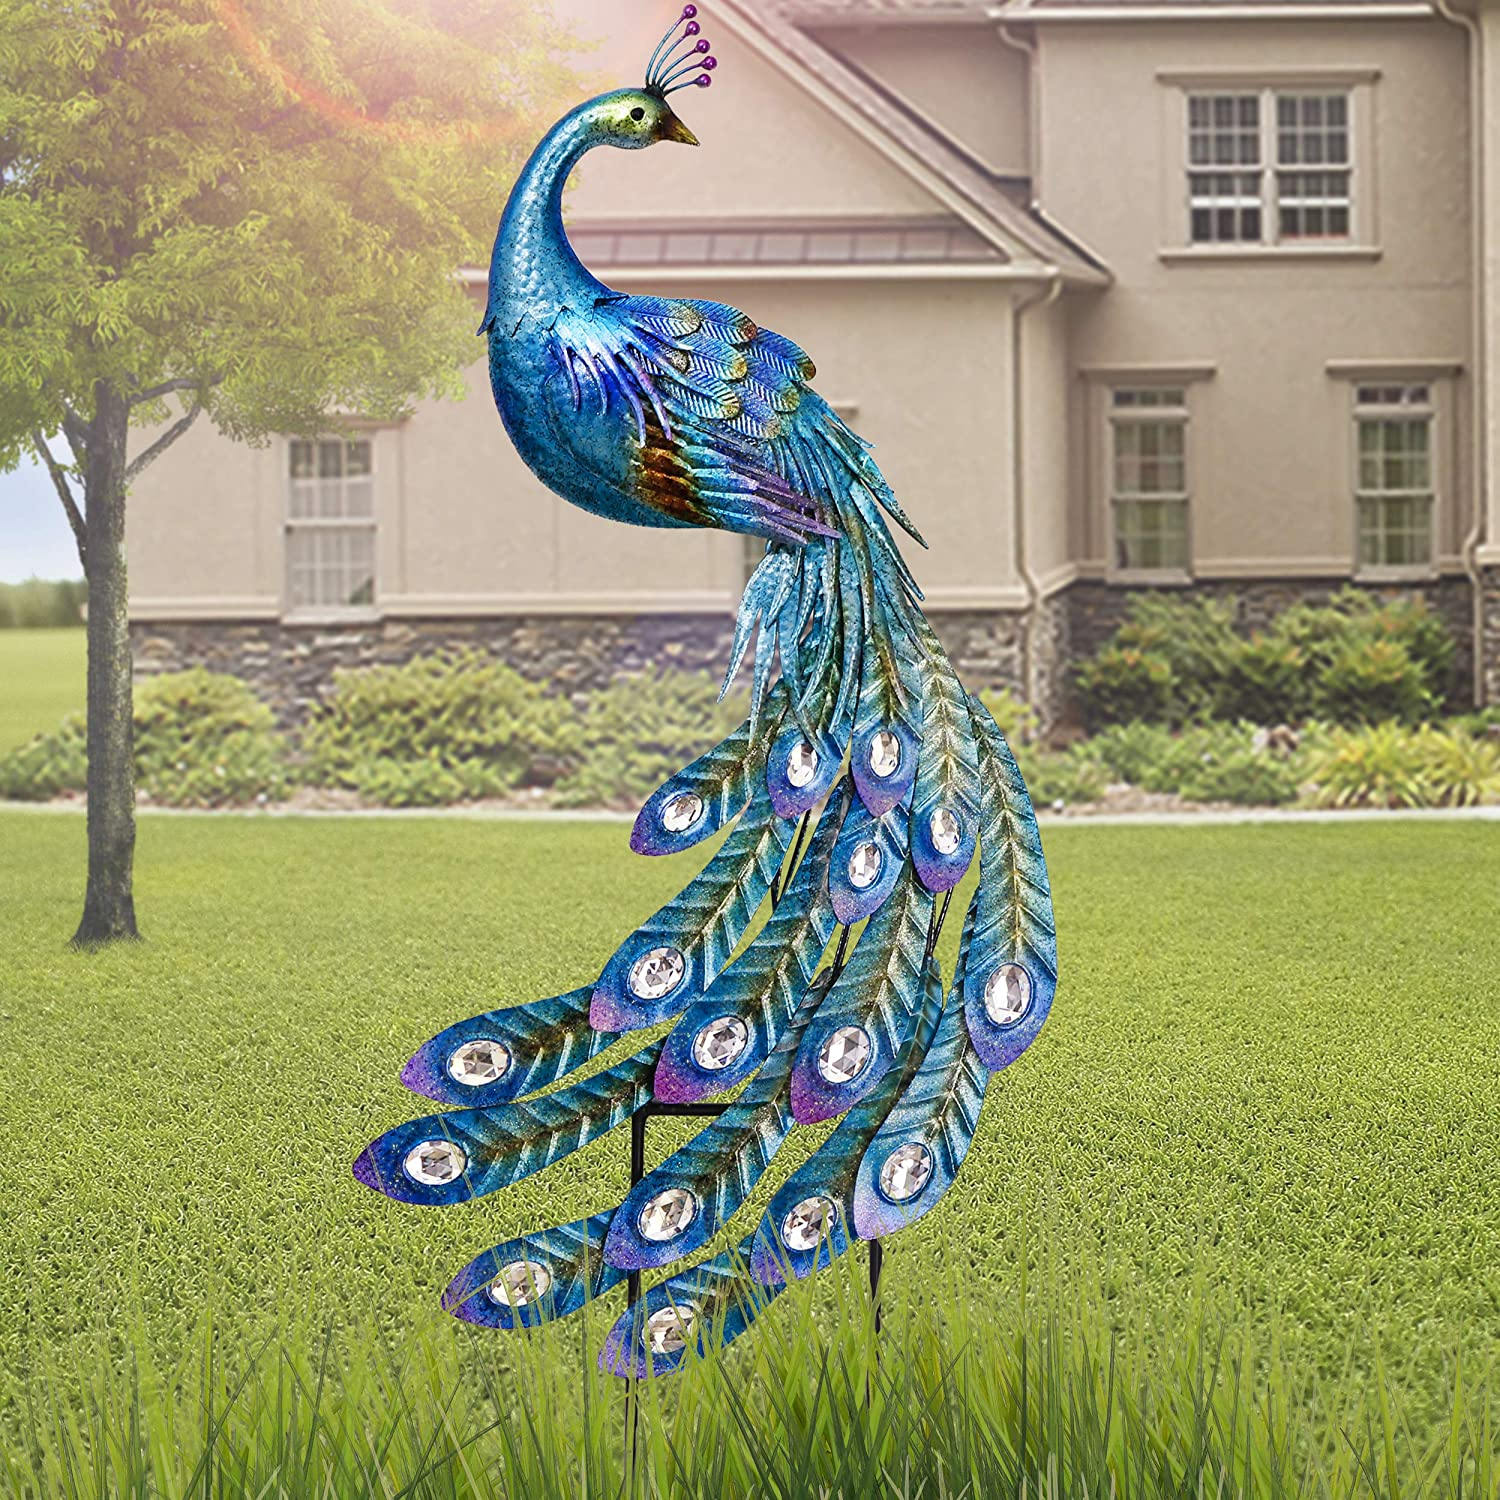 TERESAS COLLECTIONS 47 inch Metal Peacock Decor for Garden Wall Art Indoor Outdoor Decoration Dual Use Peacock Stake Statues for Patio Yard Lawn Christmas Home Decor